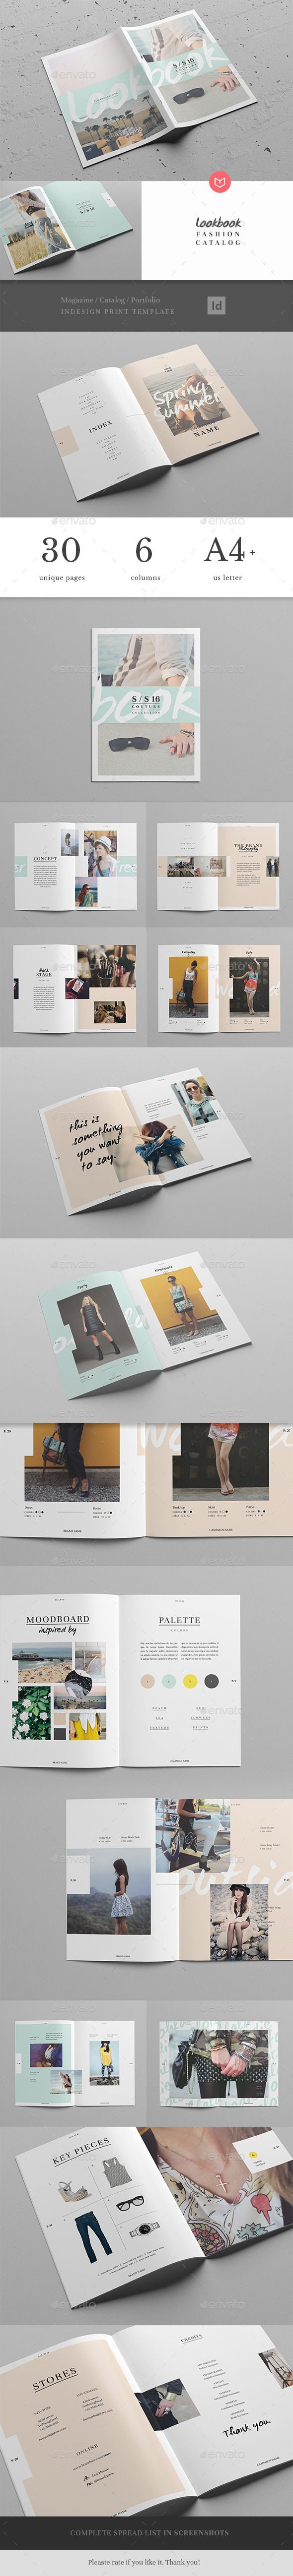 Lookbook / Fashion Magazine + Catalogue - Magazines Print Templates